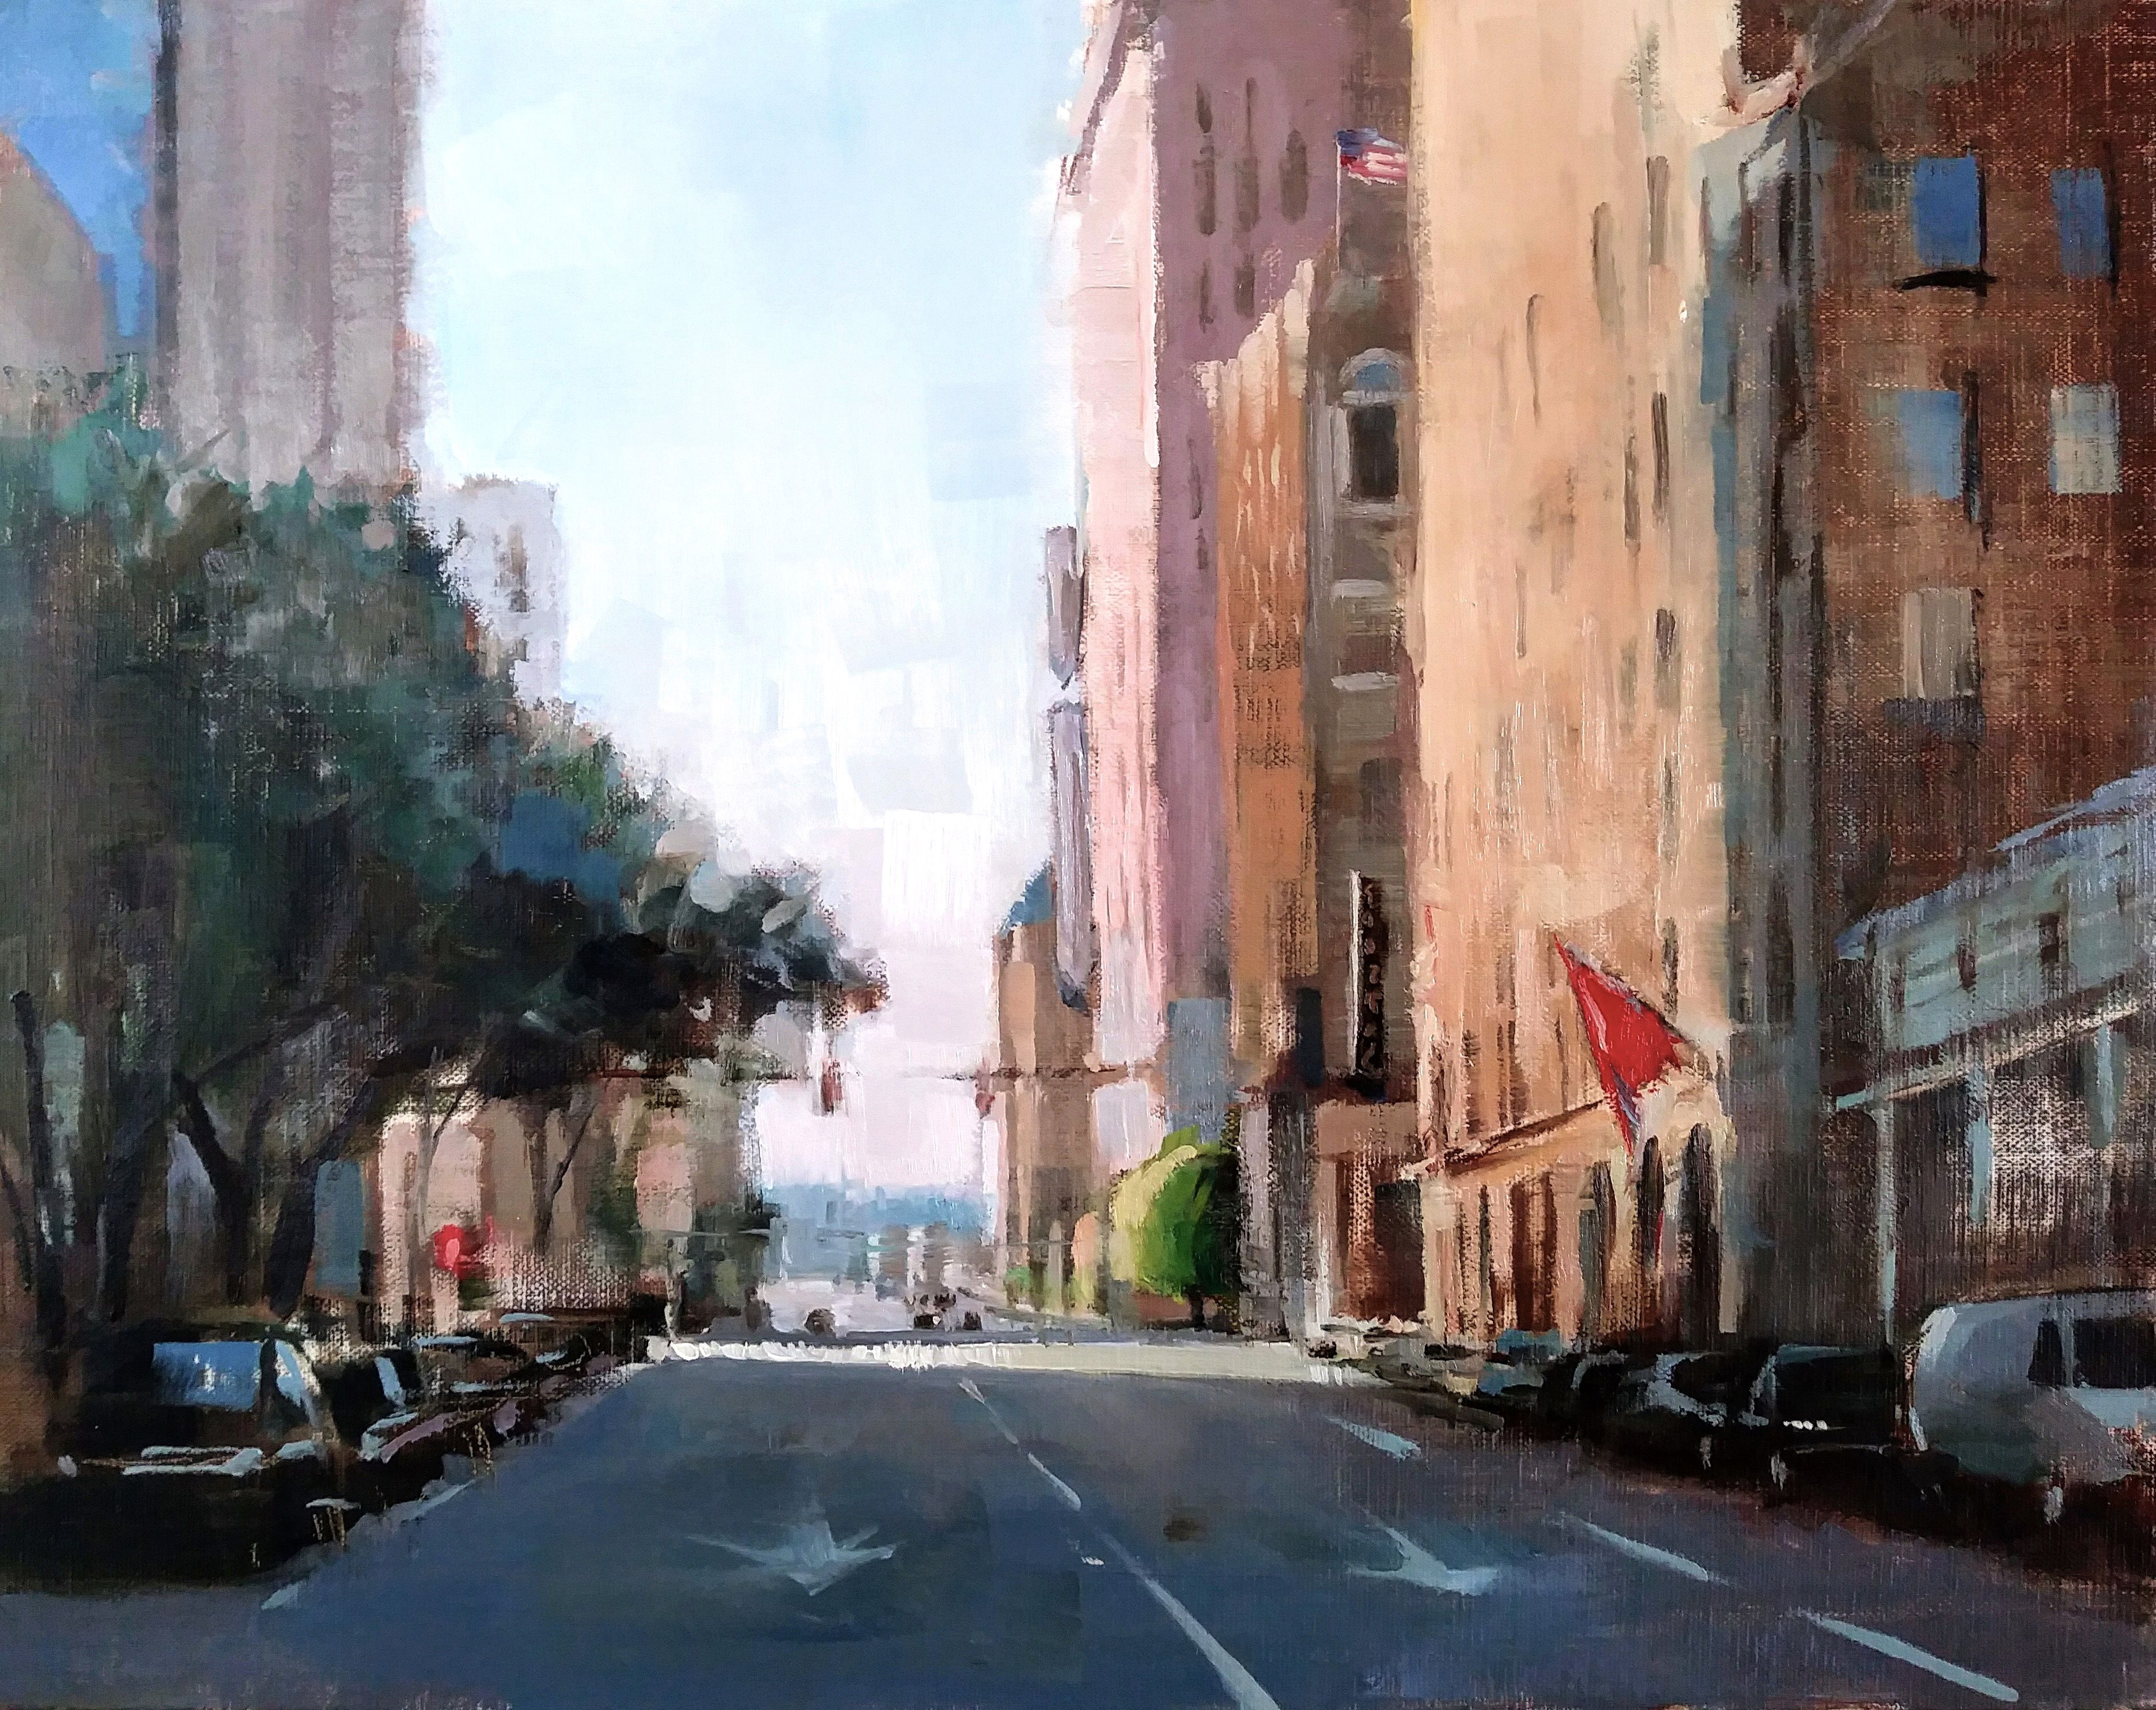 After The Rush By Amy R Peterson Art Painting Landscape Landscapepainting Citystreet City Cityscene City Painting Landscape Paintings City Scene